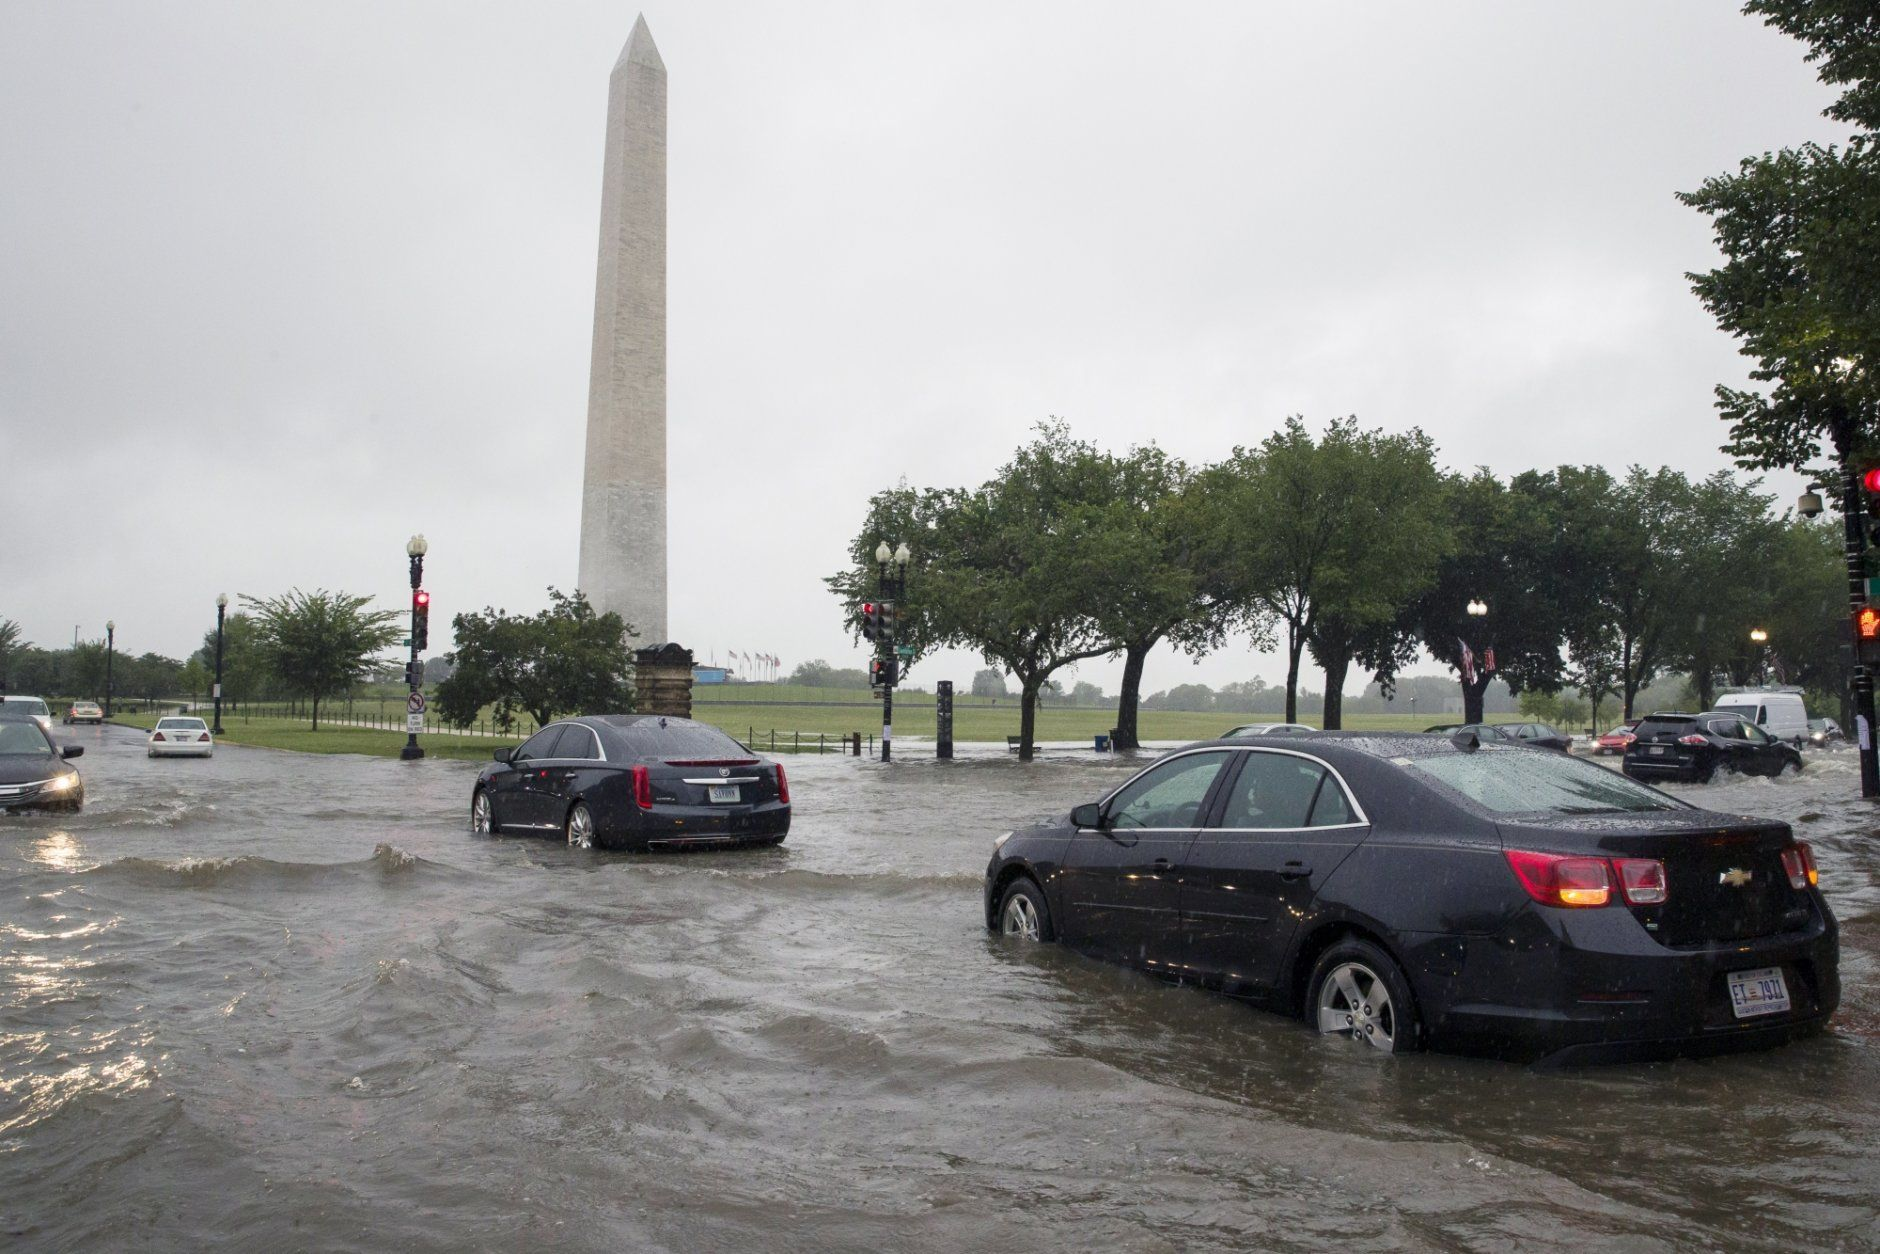 Heavy rainfall flooded the intersection of 15th Street and Constitution Ave., NW stalling cars in the street, Monday, July 8, 2019, in Washington near the Washington Monument. (AP/Alex Brandon)